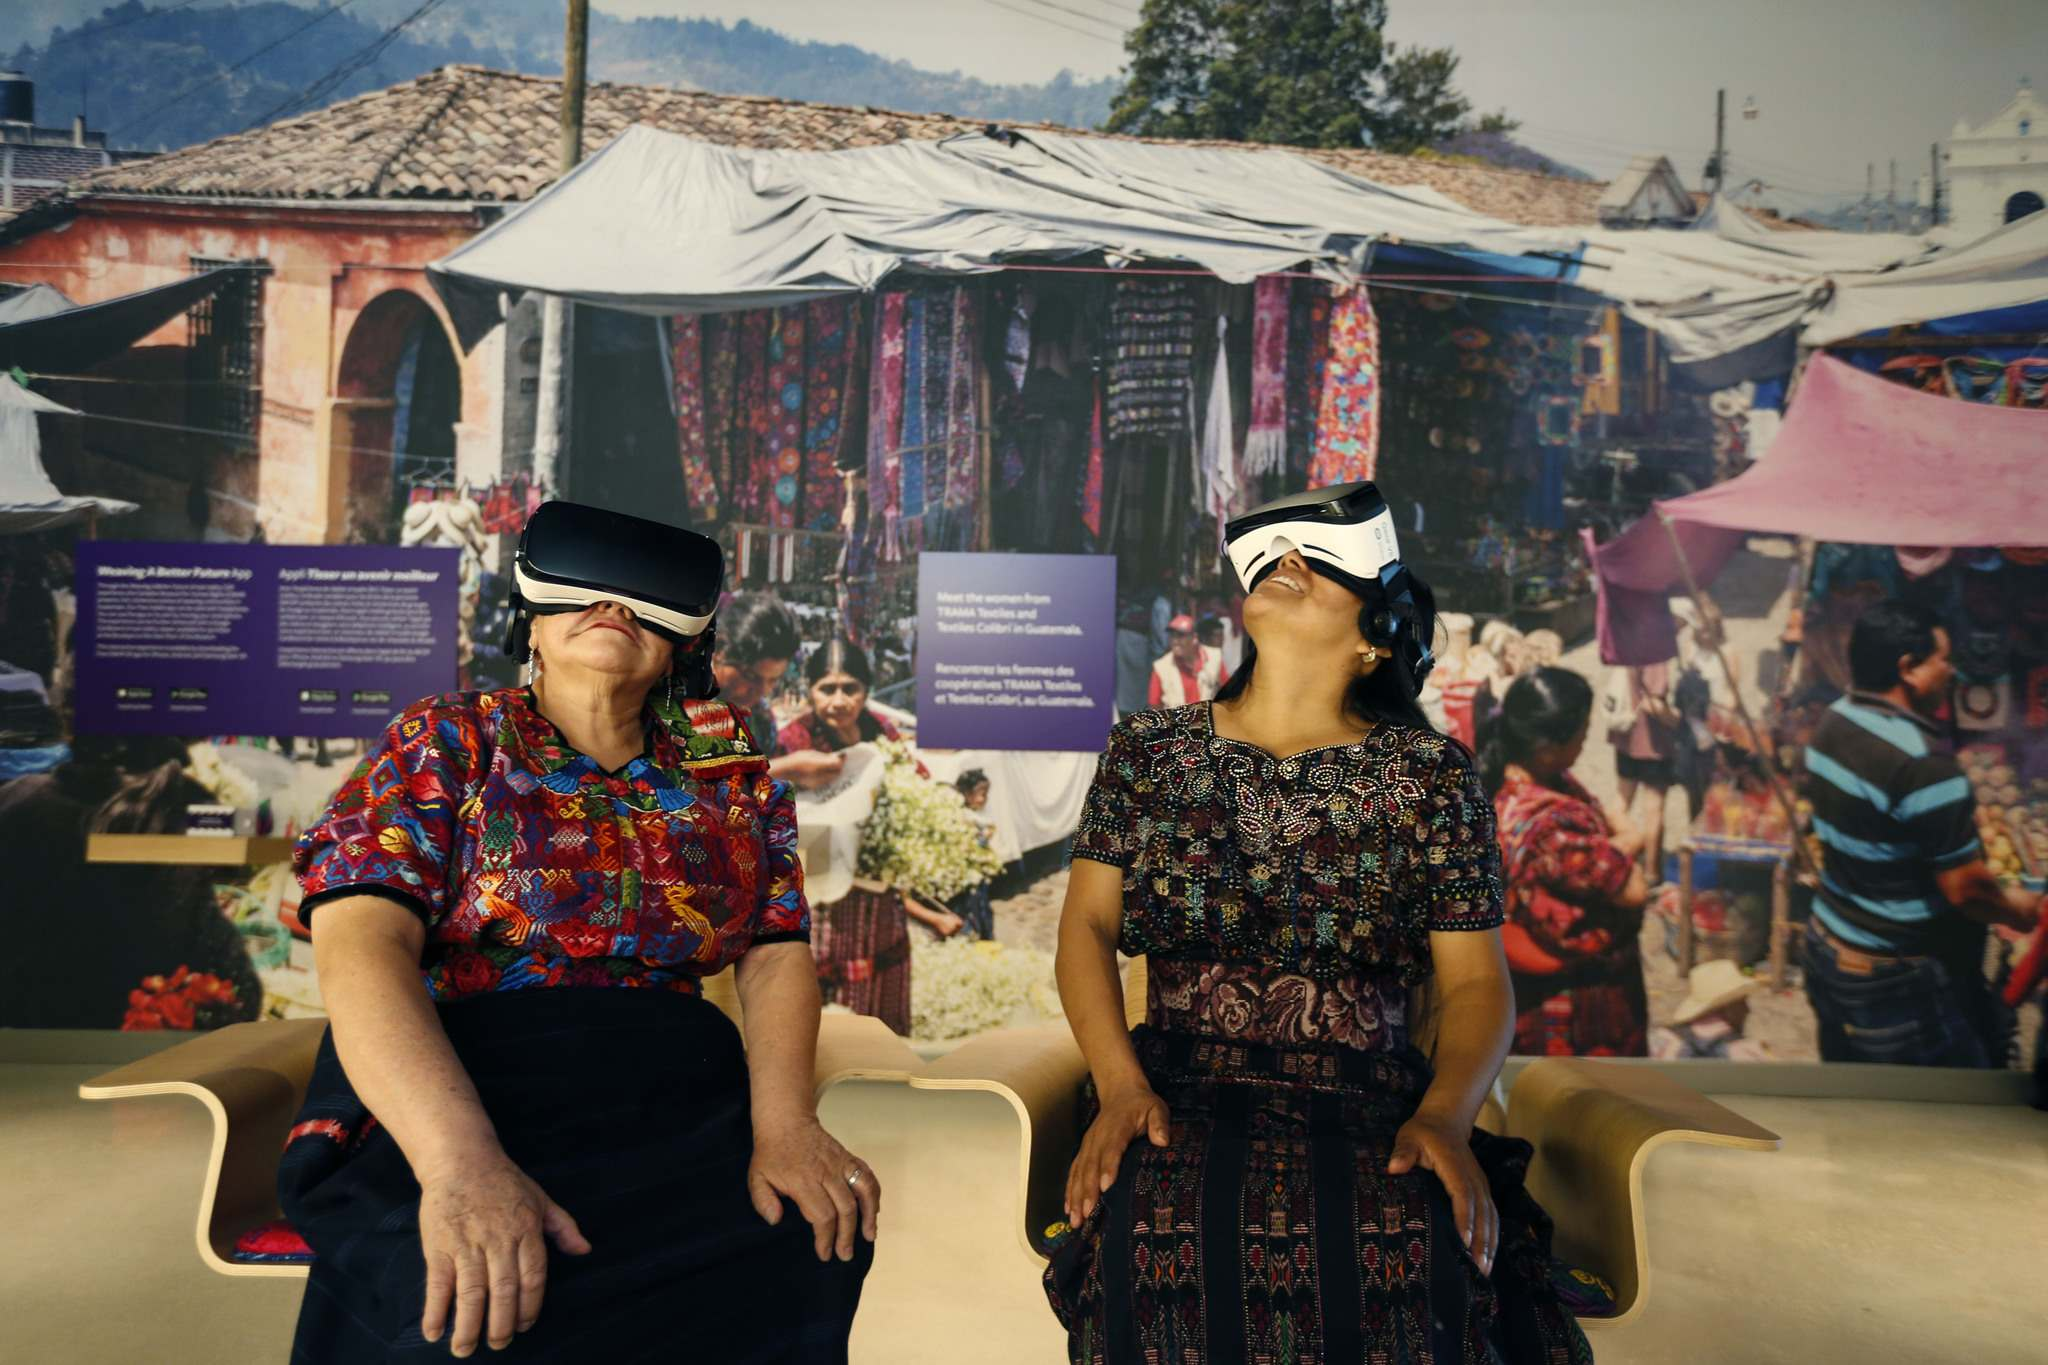 WAYNE GLOWACKI / WINNIPEG FREE PRESS</p><p>Amparo de Le&#243;n (left) and Oralia Chopen came from Guatemala to try the Canadian Museum for Human Rights&rsquo; first 3-D virtual-reality exhibit, Empowering Women: Artisan Co-operatives that Transform Communities.</p>